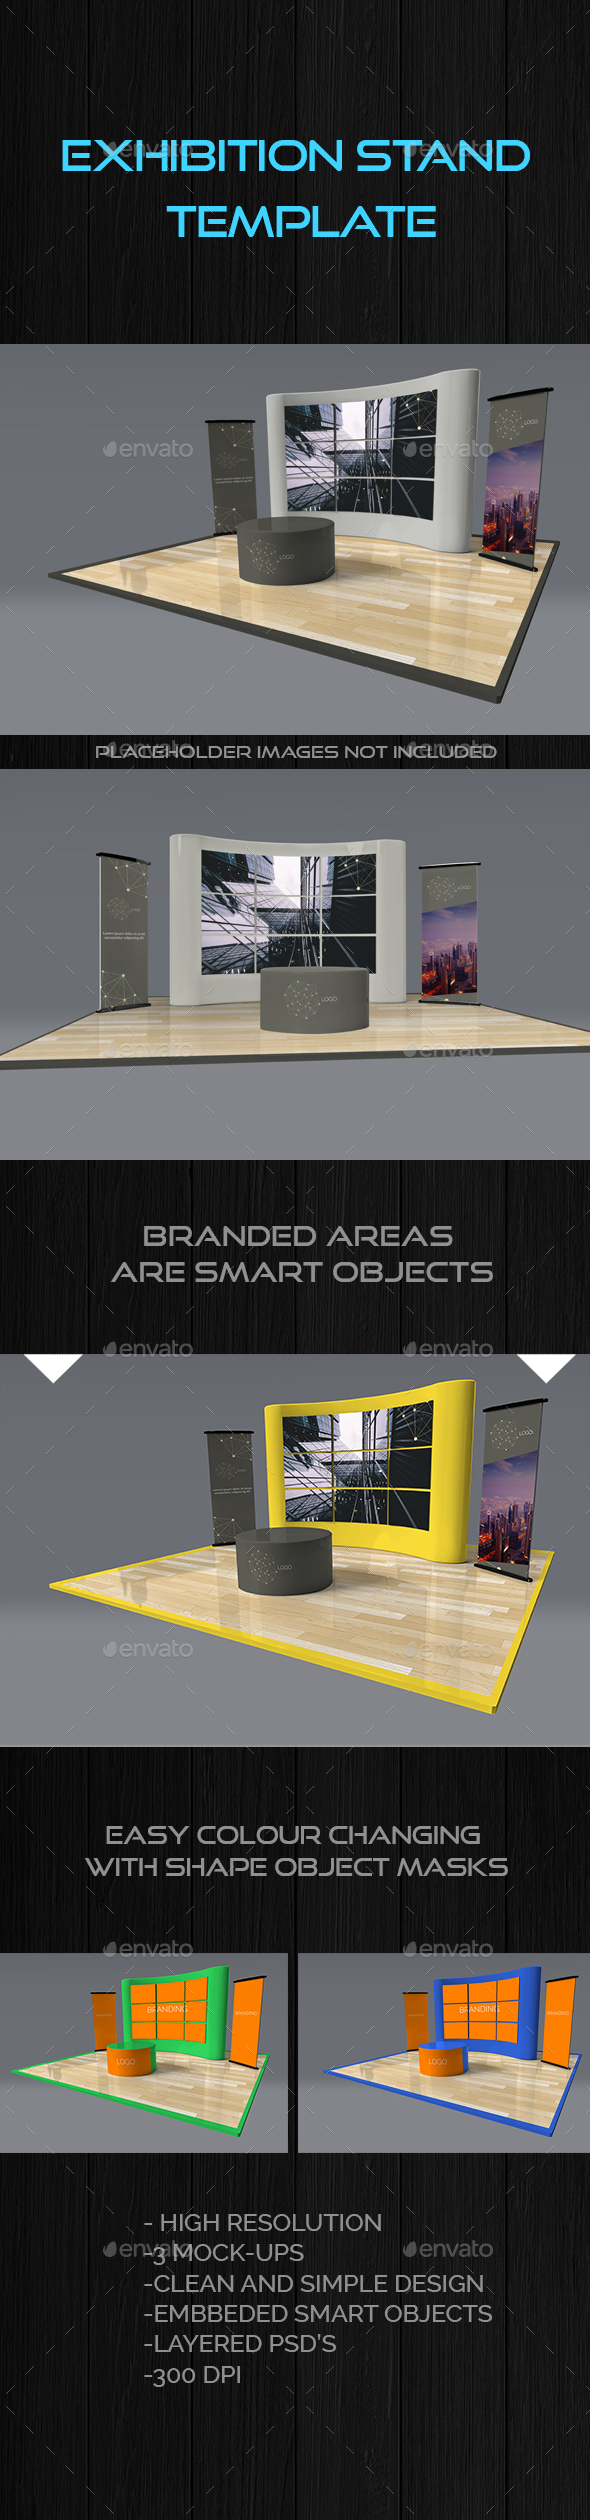 Exhibition Stand Mock Up Templates - Miscellaneous Print